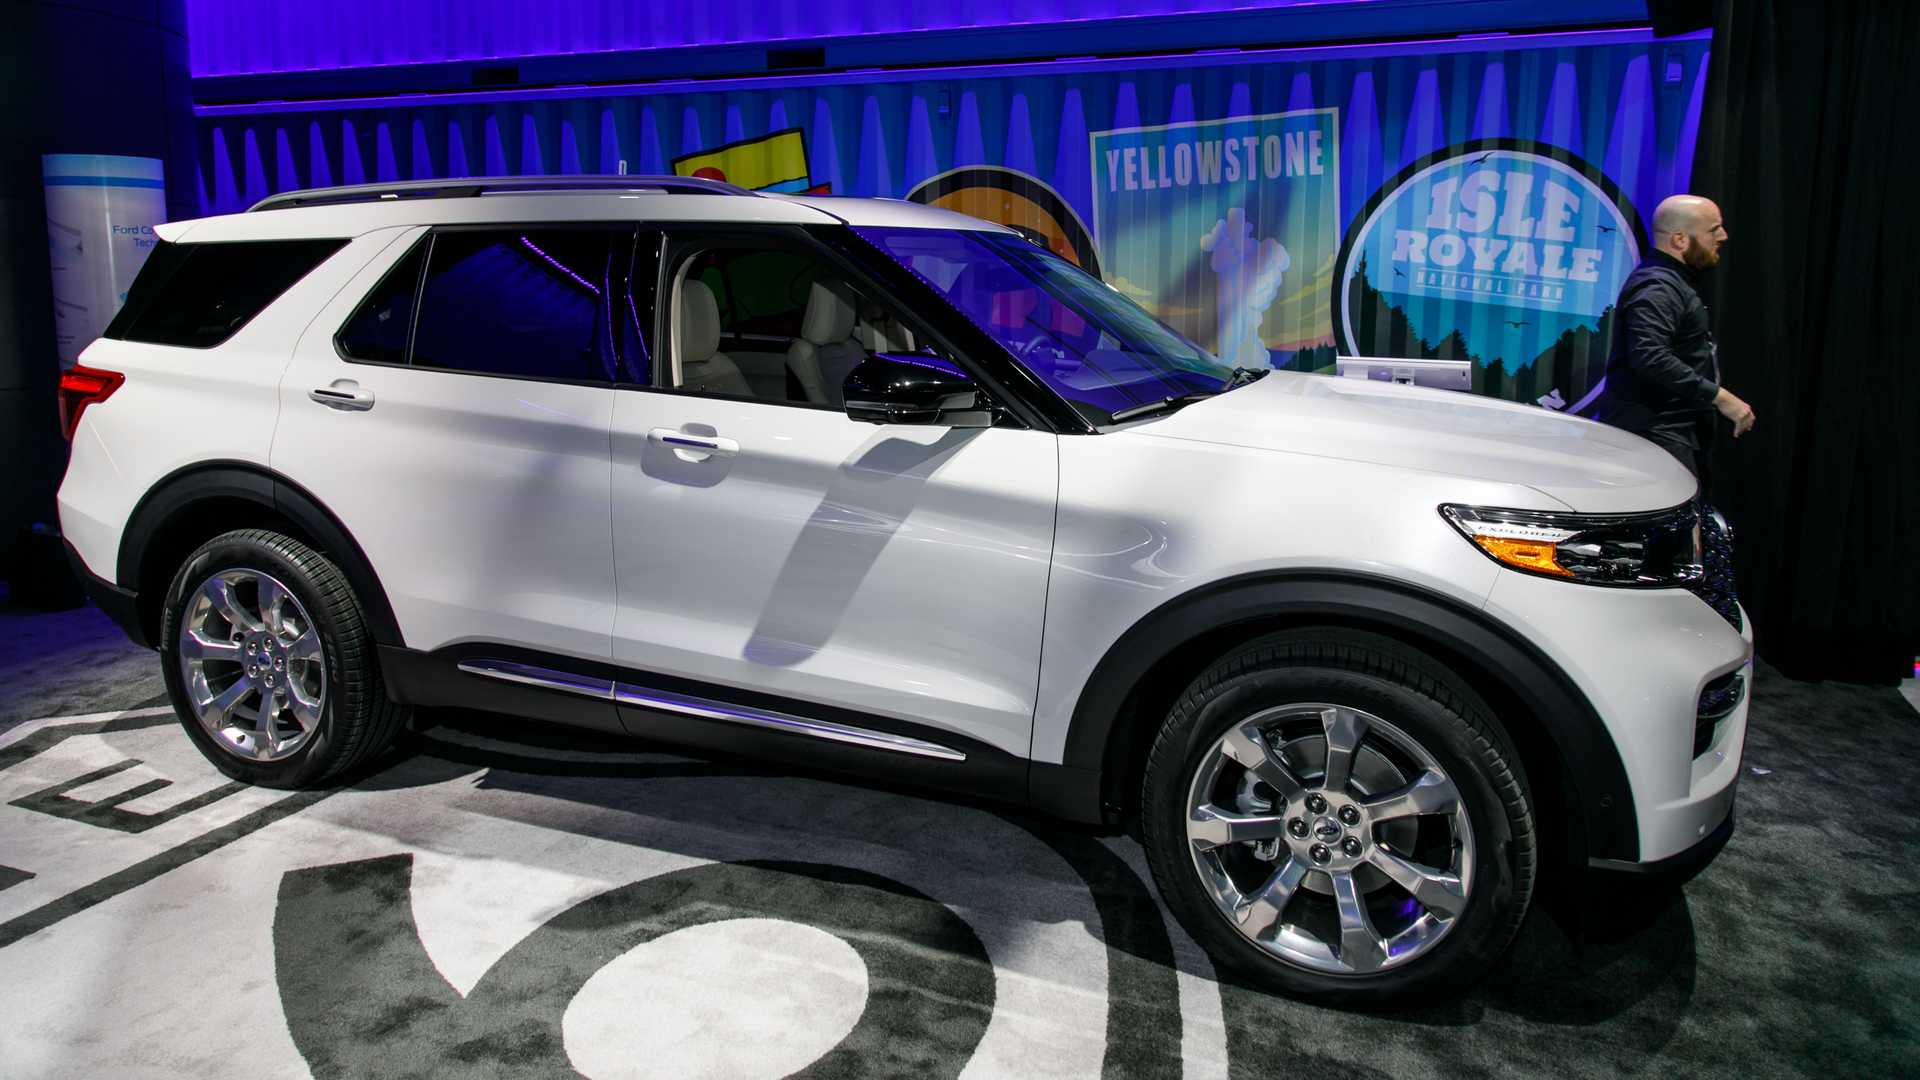 23 Concept of 2020 Ford Explorer Availability Research New for 2020 Ford Explorer Availability